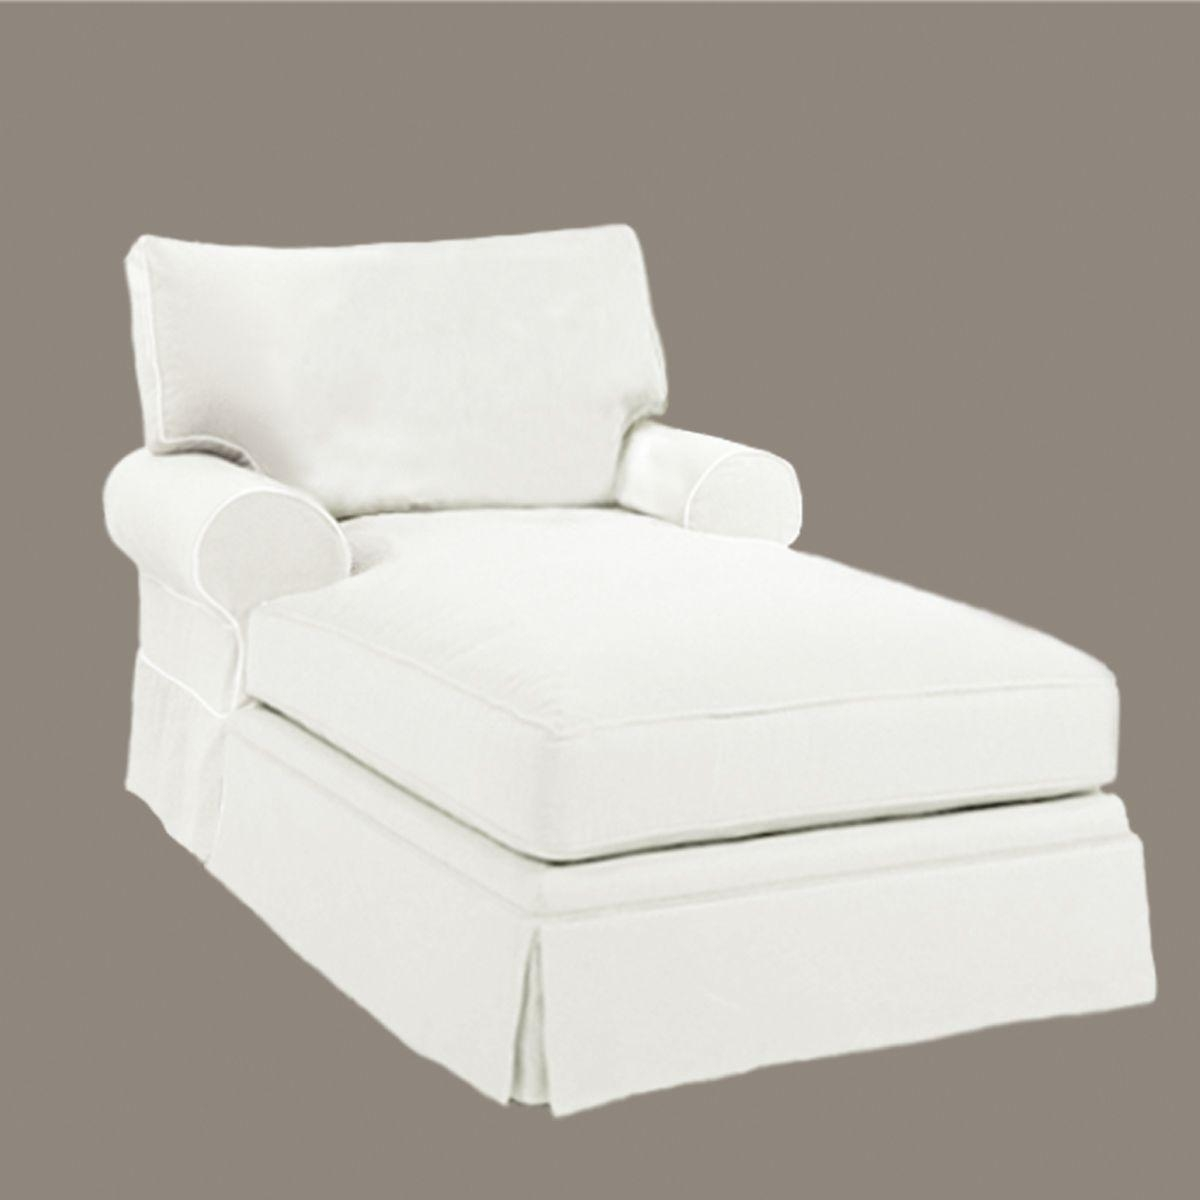 white lounge chair covers miami 20 collection of slipcovered chaises sofa ideas